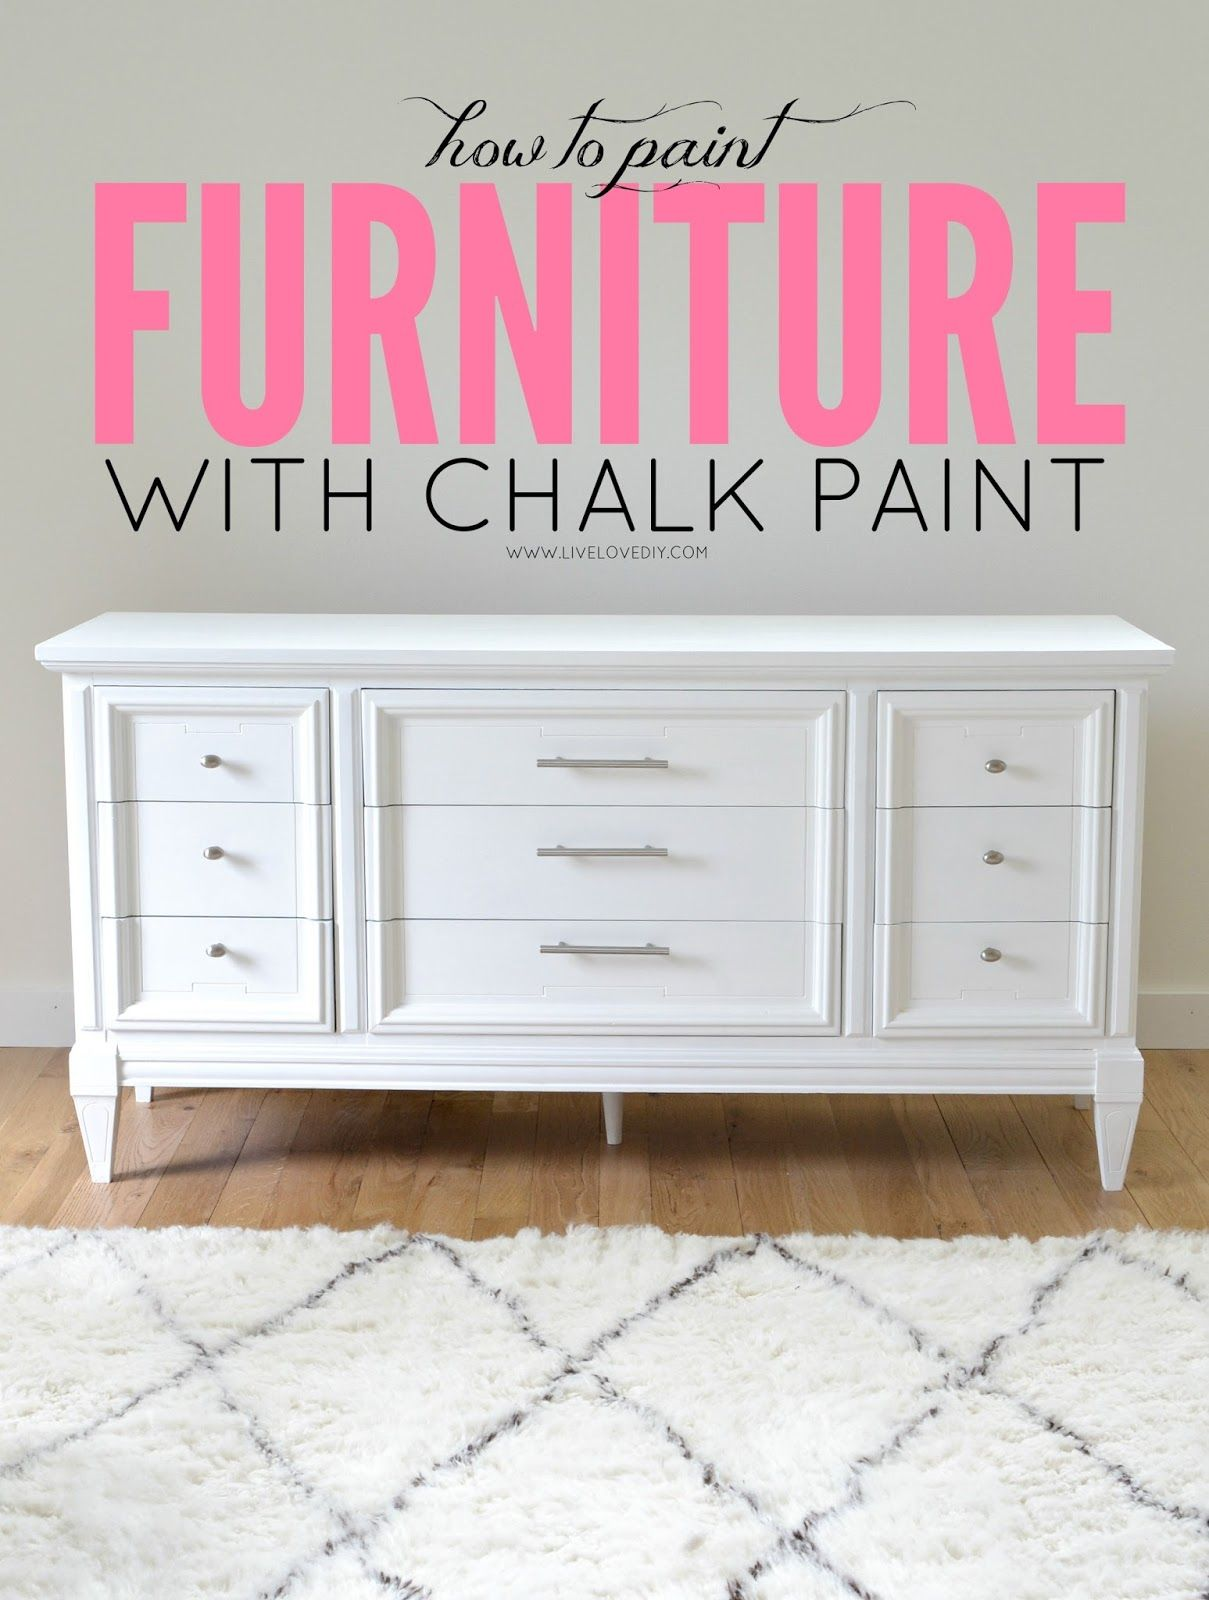 How To Paint Furniture with Chalk Paint (and how to